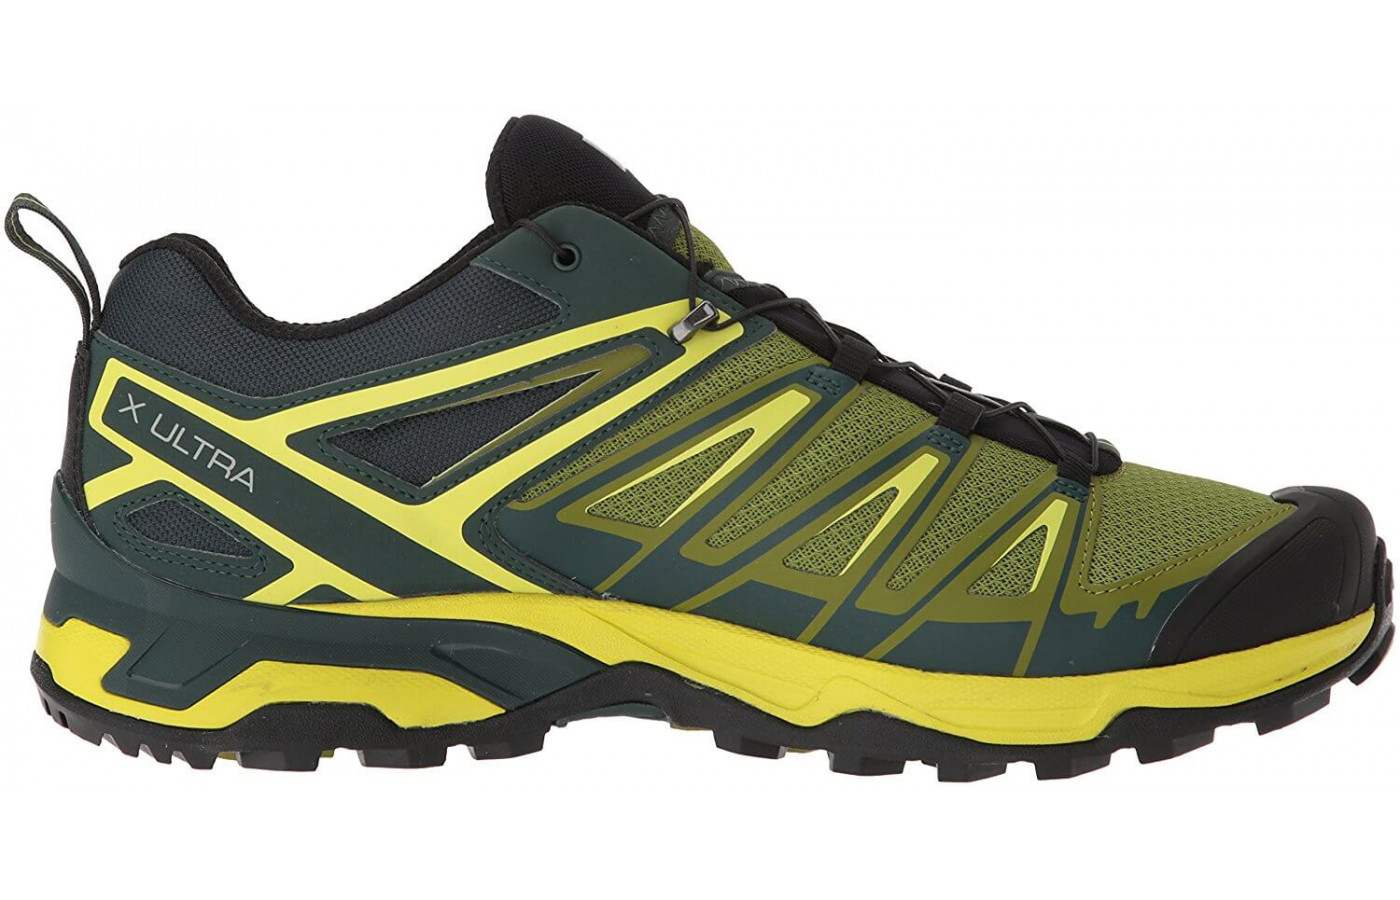 A side view of the Salomon X Ultra 3.